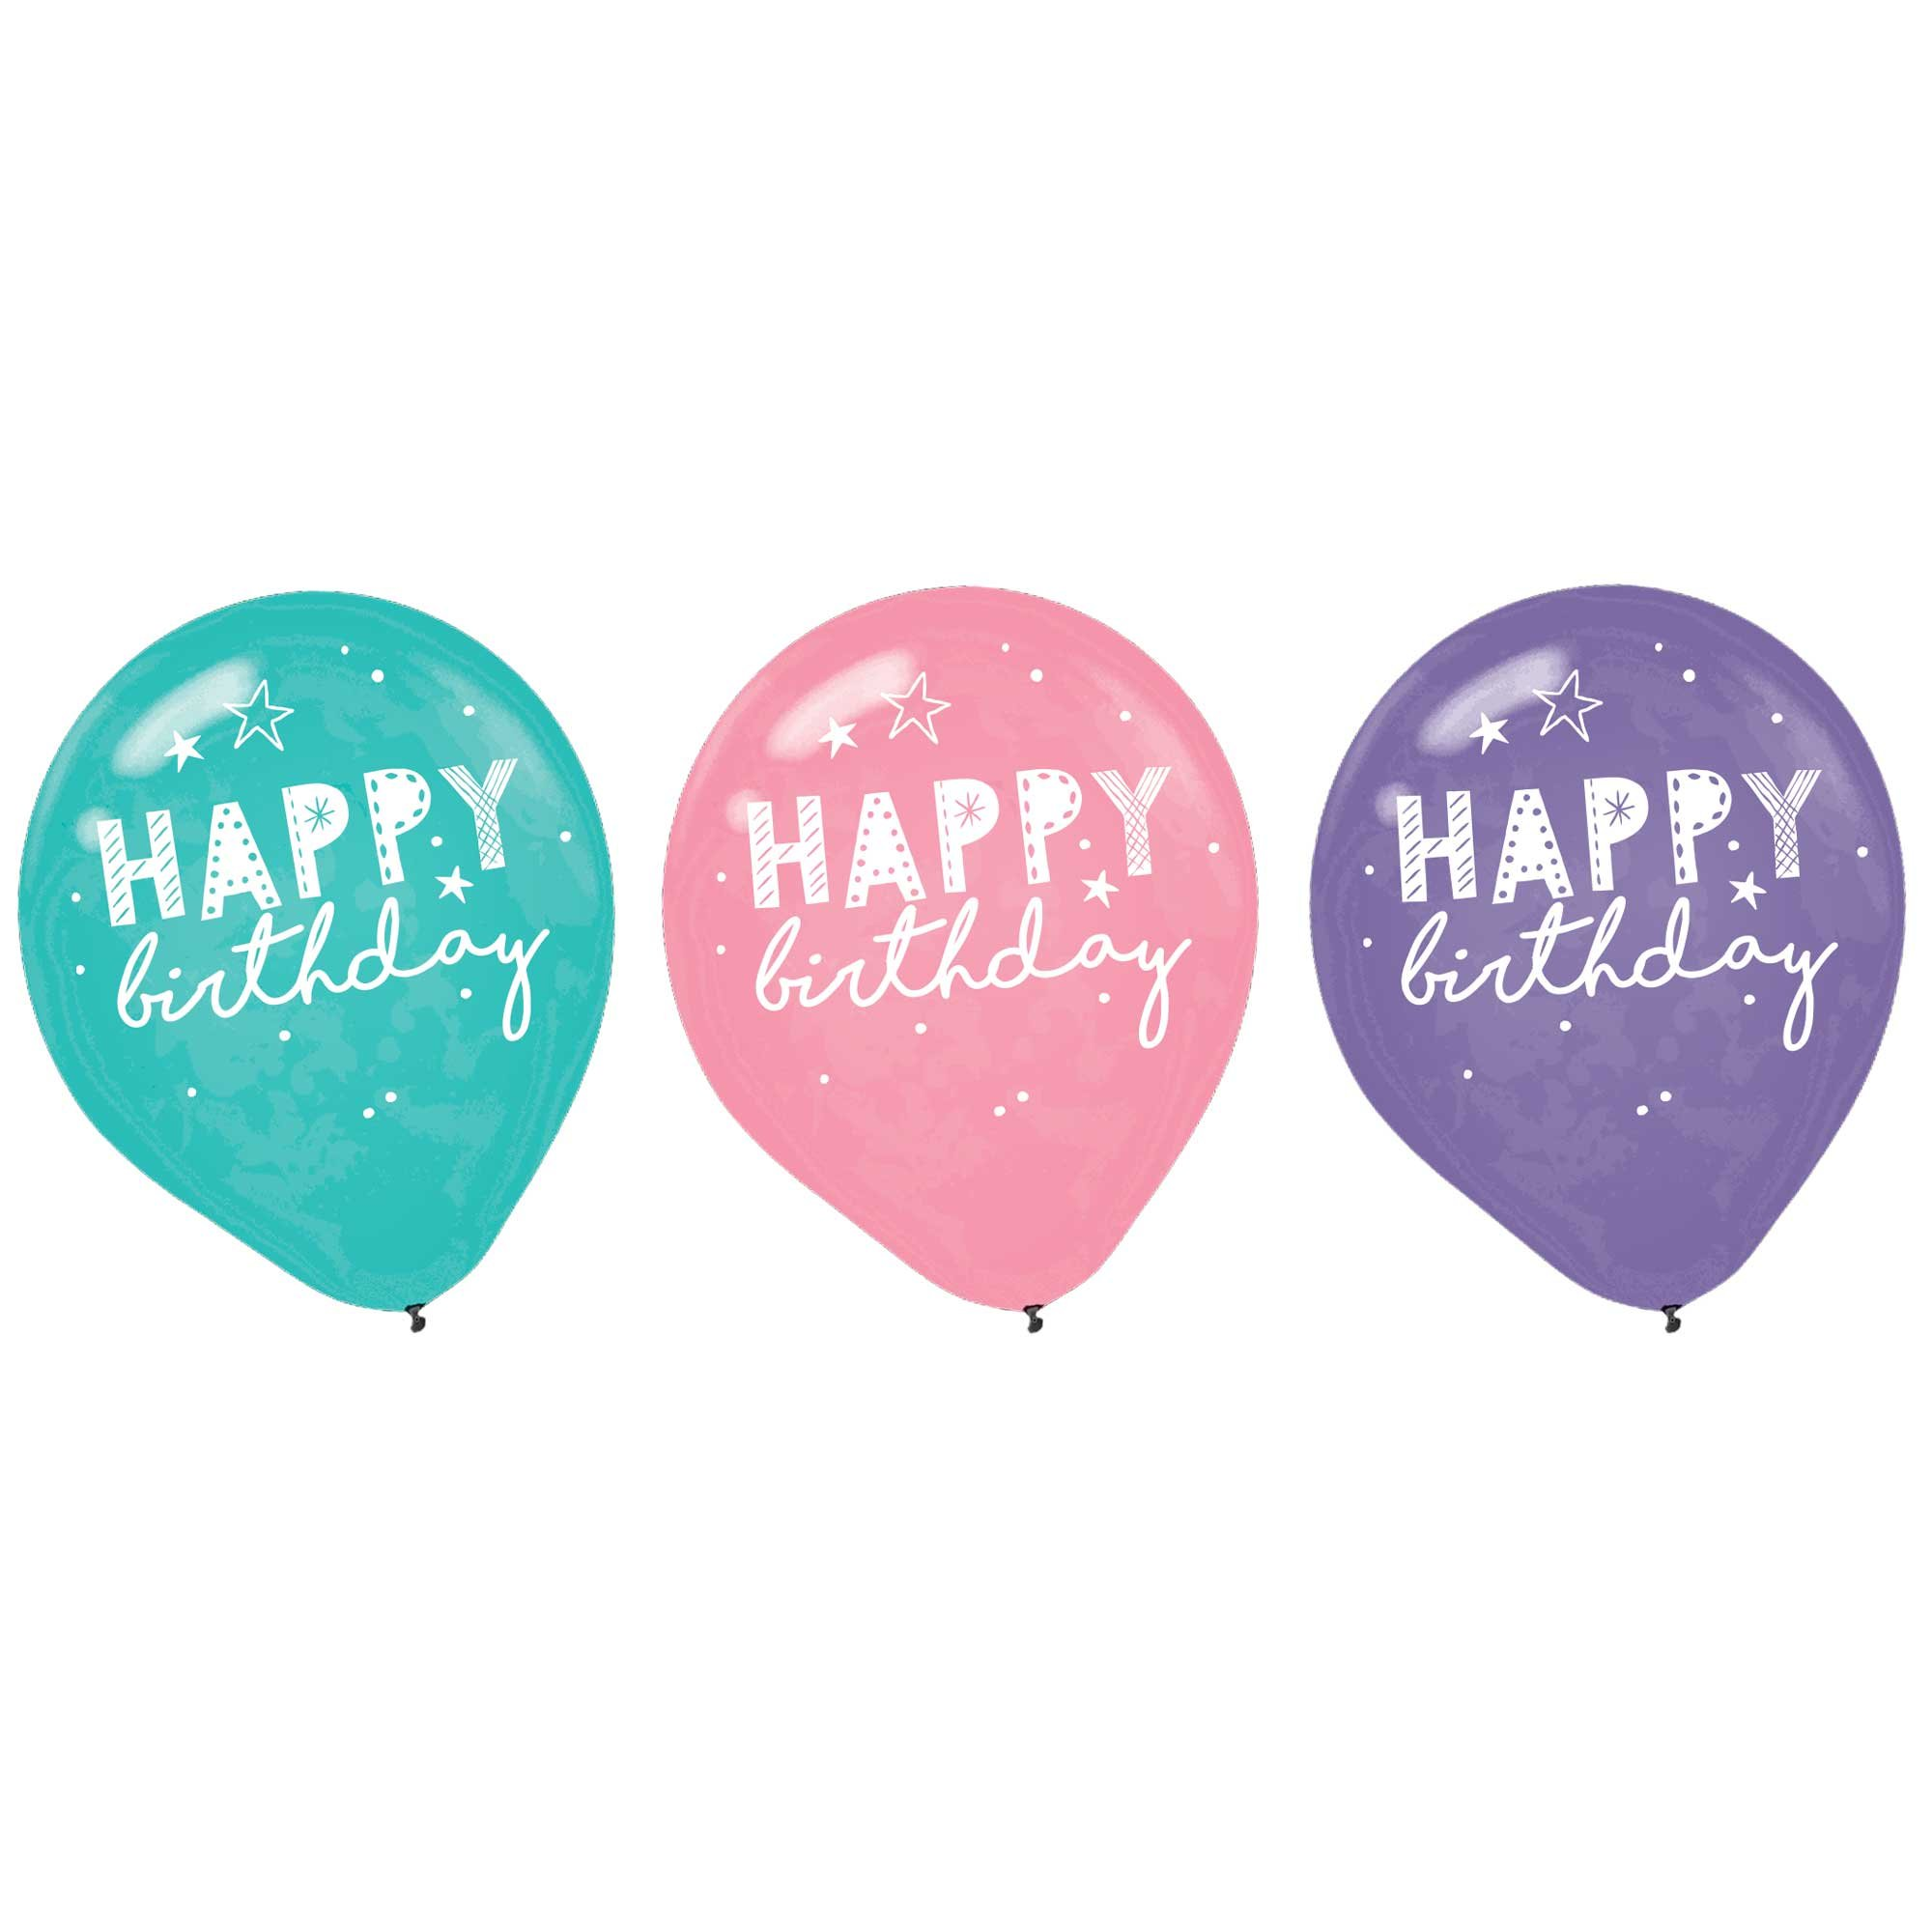 Girl-Chella Happy Birthday 30cm Latex Balloons